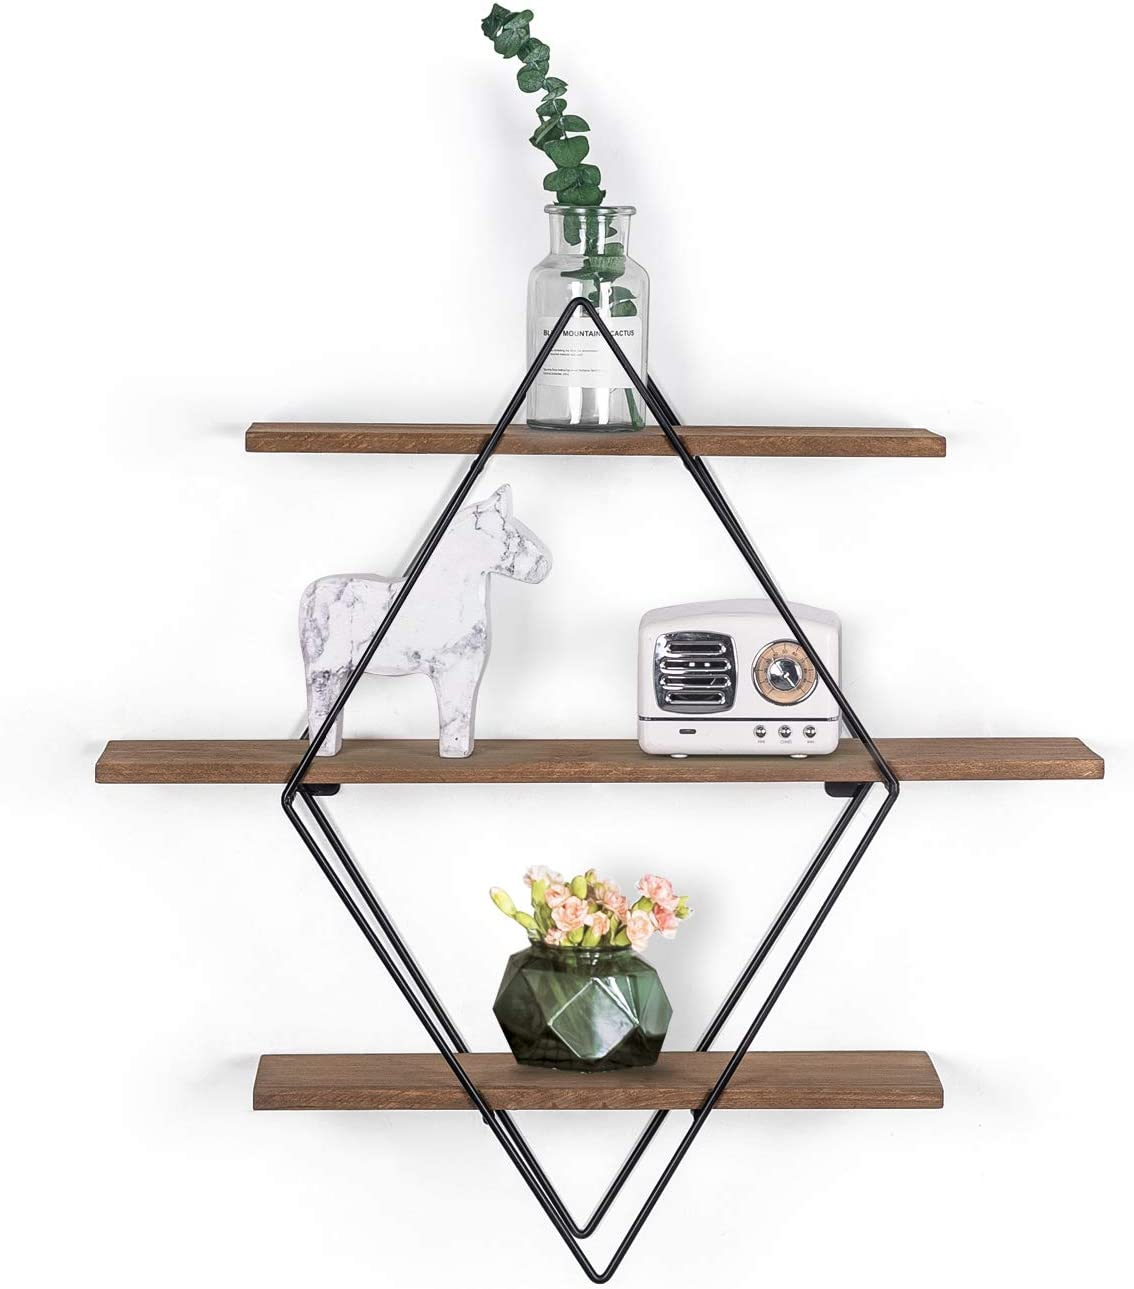 Decent Home 3-Tier Diamond Floating Shelves Wall Mounted, Farmhouse Solid Wood and Metal Rustic Decor Storage for Living Room, Bedroom, Office (Brown)